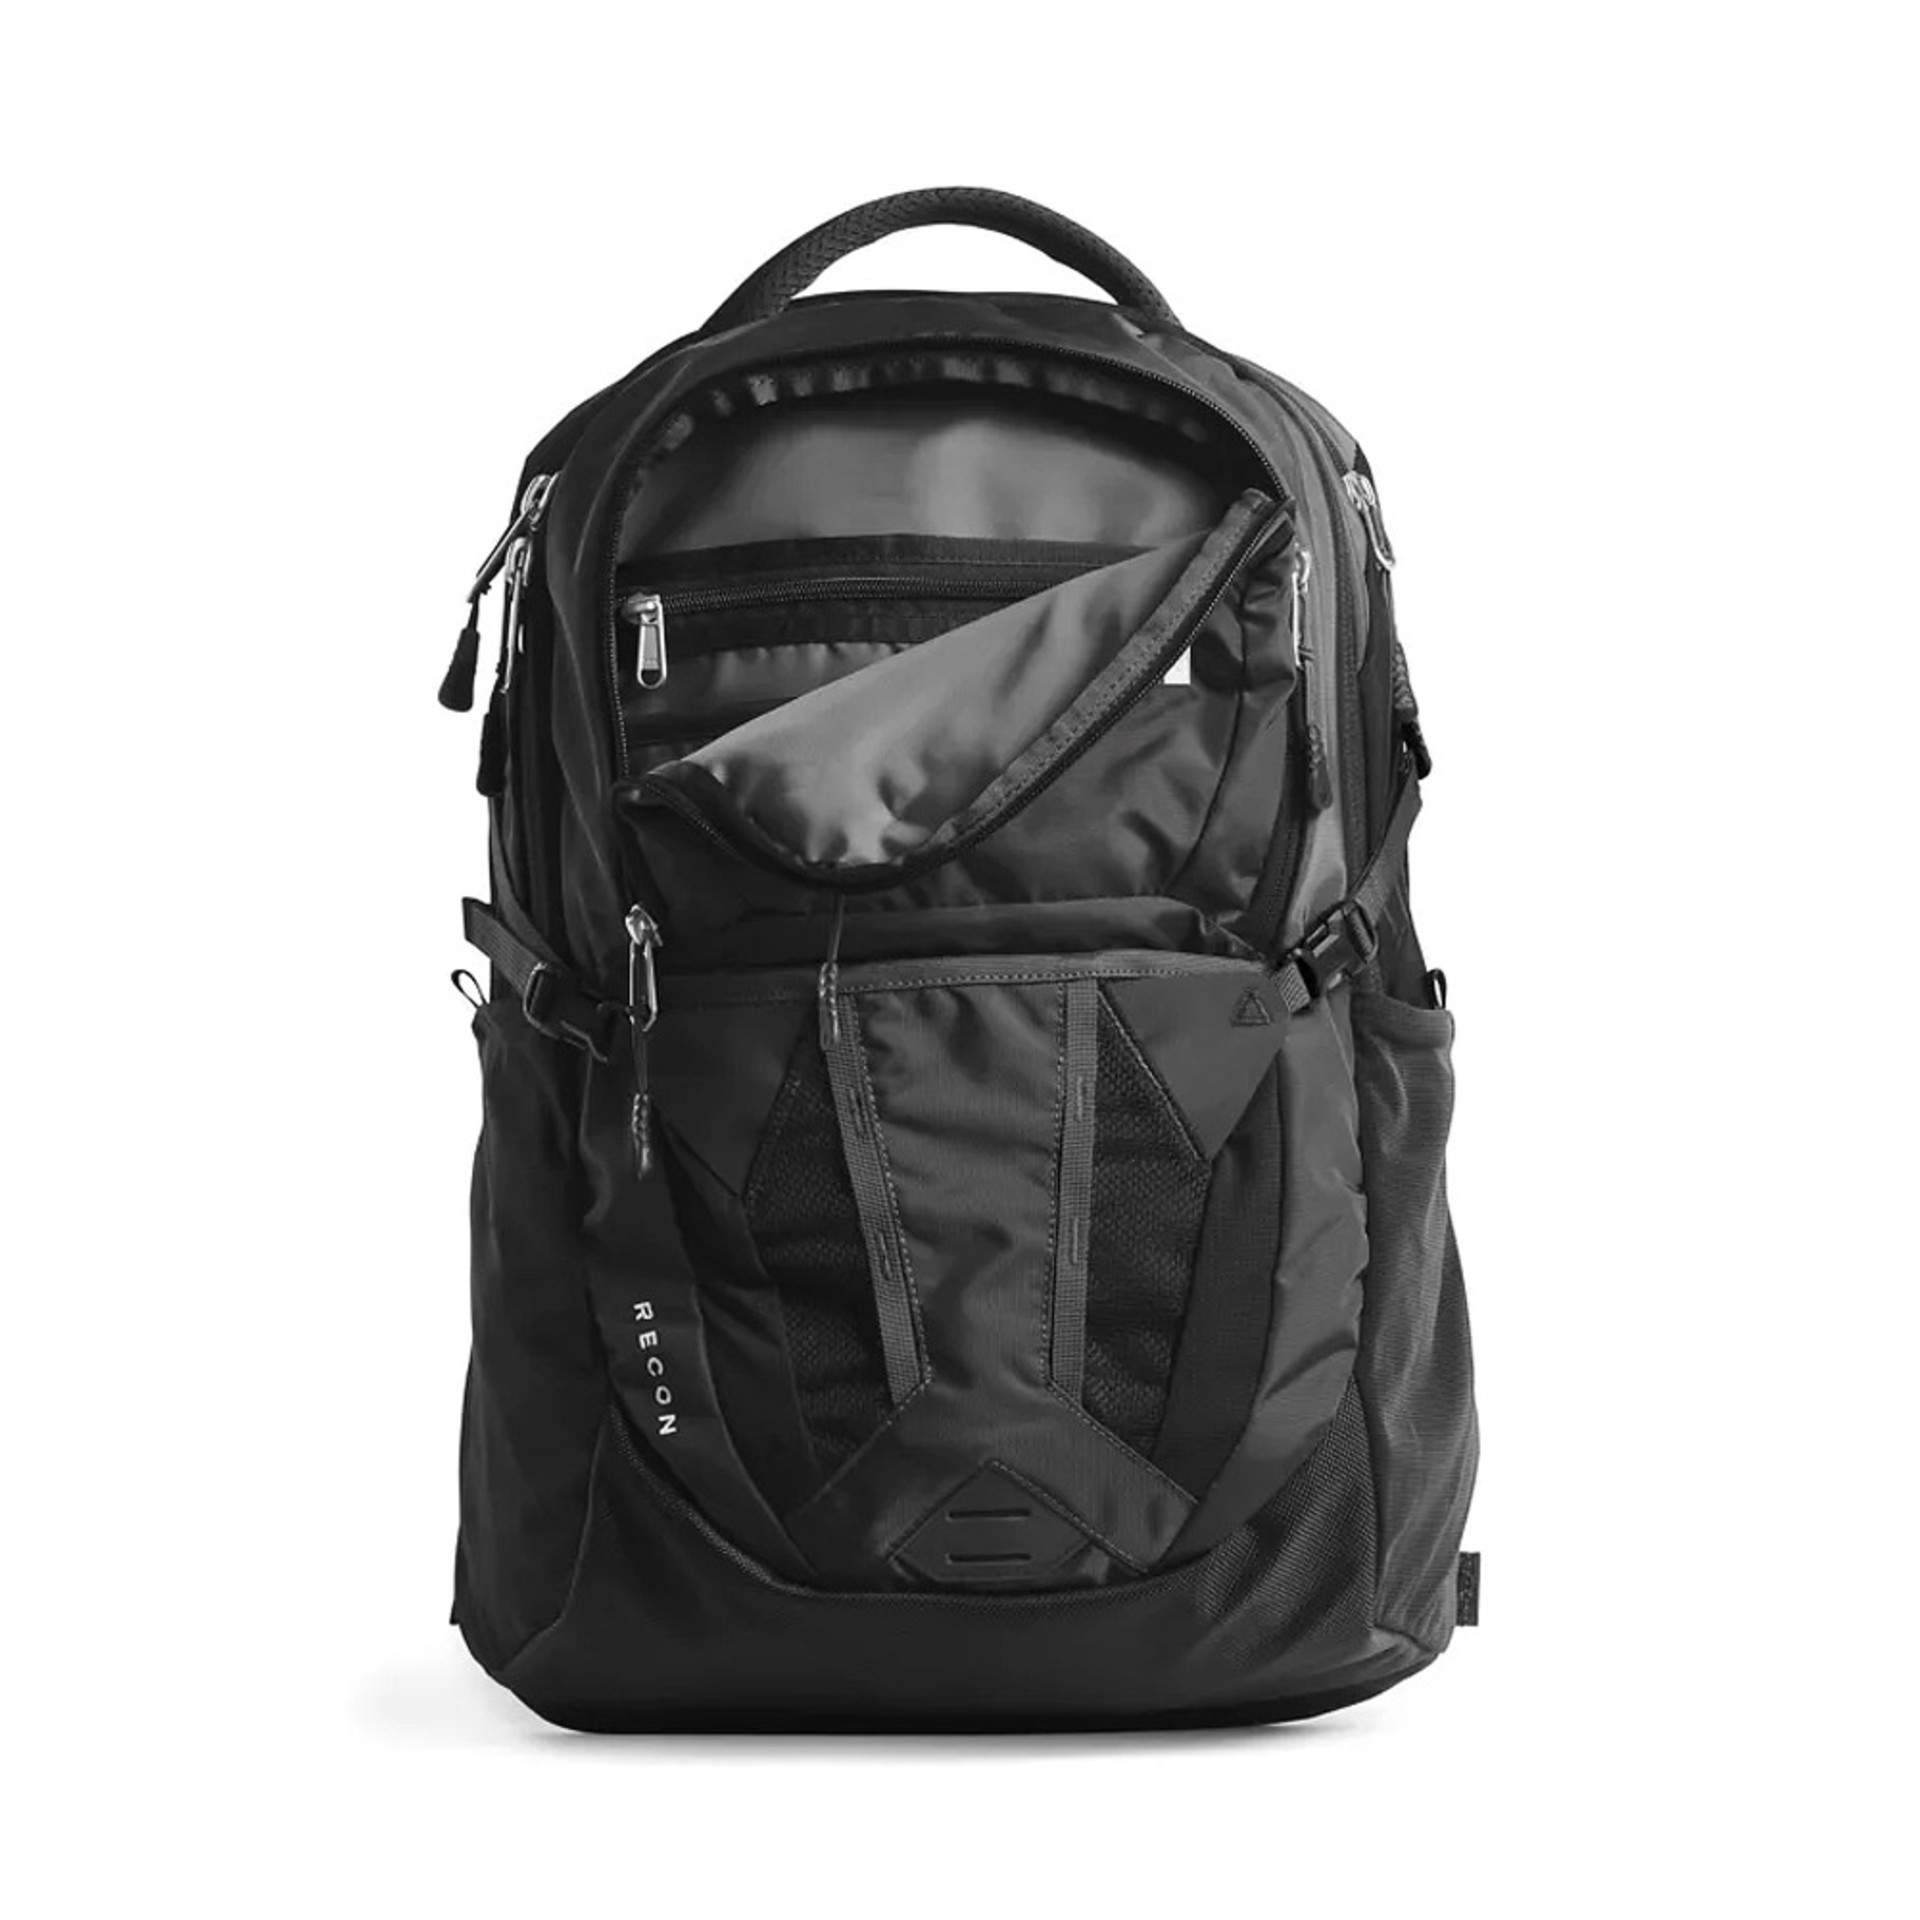 The North Face Women's Recon Backpack Black Open